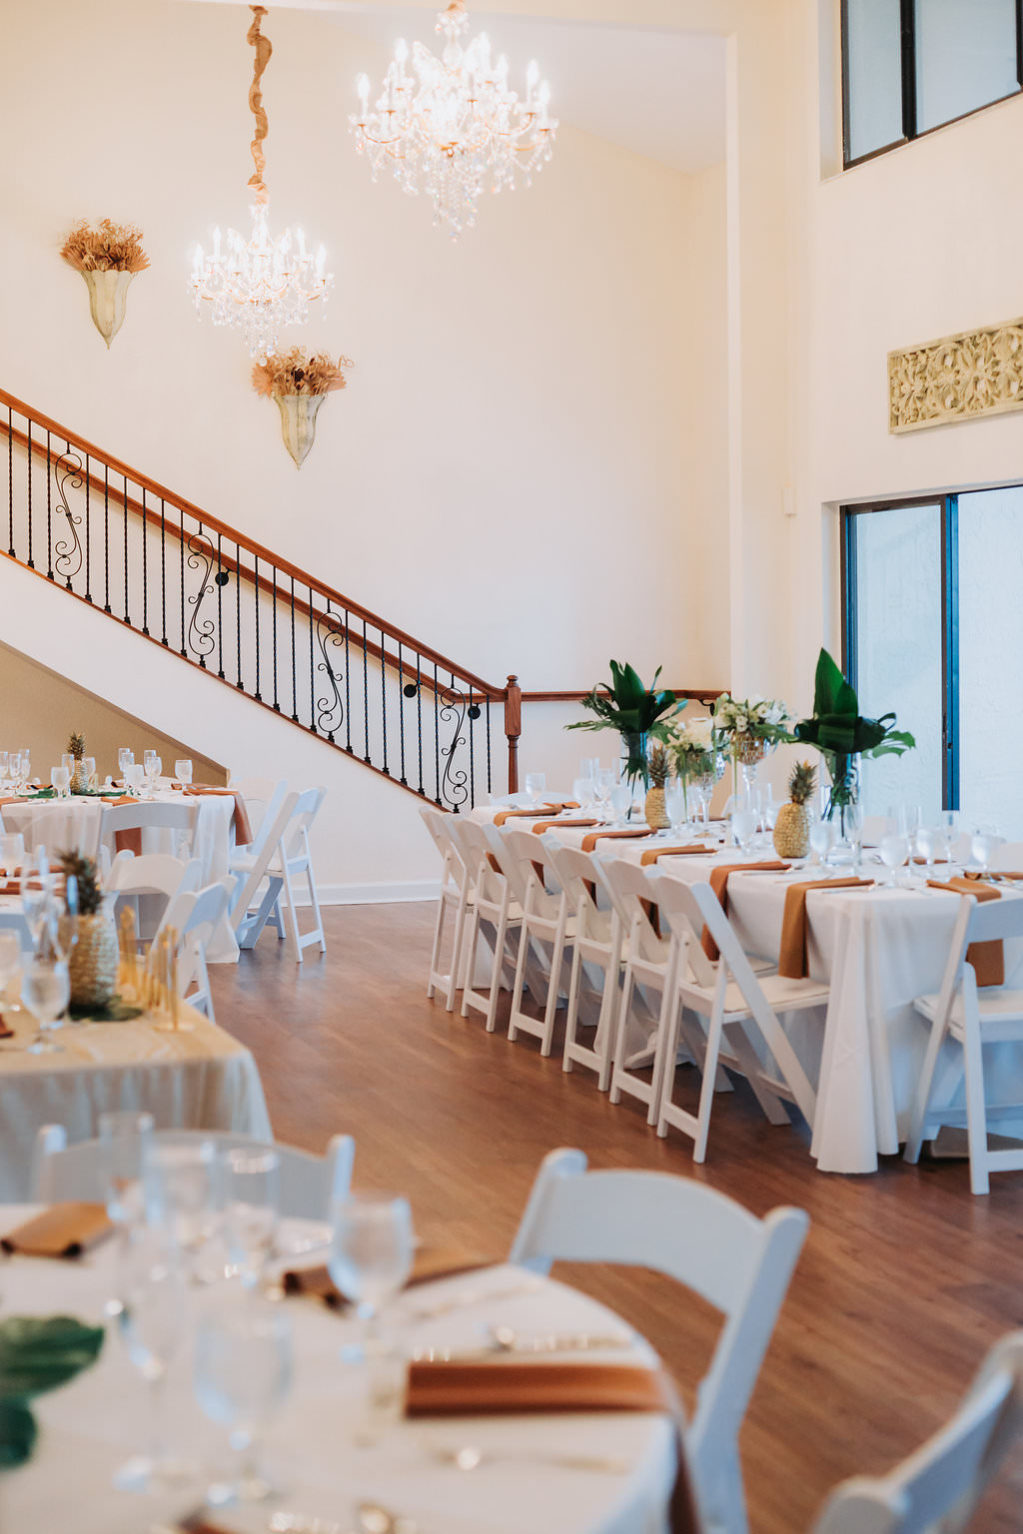 Indoor Hotel Ballroom Wedding Reception with Tan and White Table Linens, Pineapple and Tropical Greenery Centerpieces, and White Folding Chairs | Tampa Bay Waterfront Venue Beso Del Sol